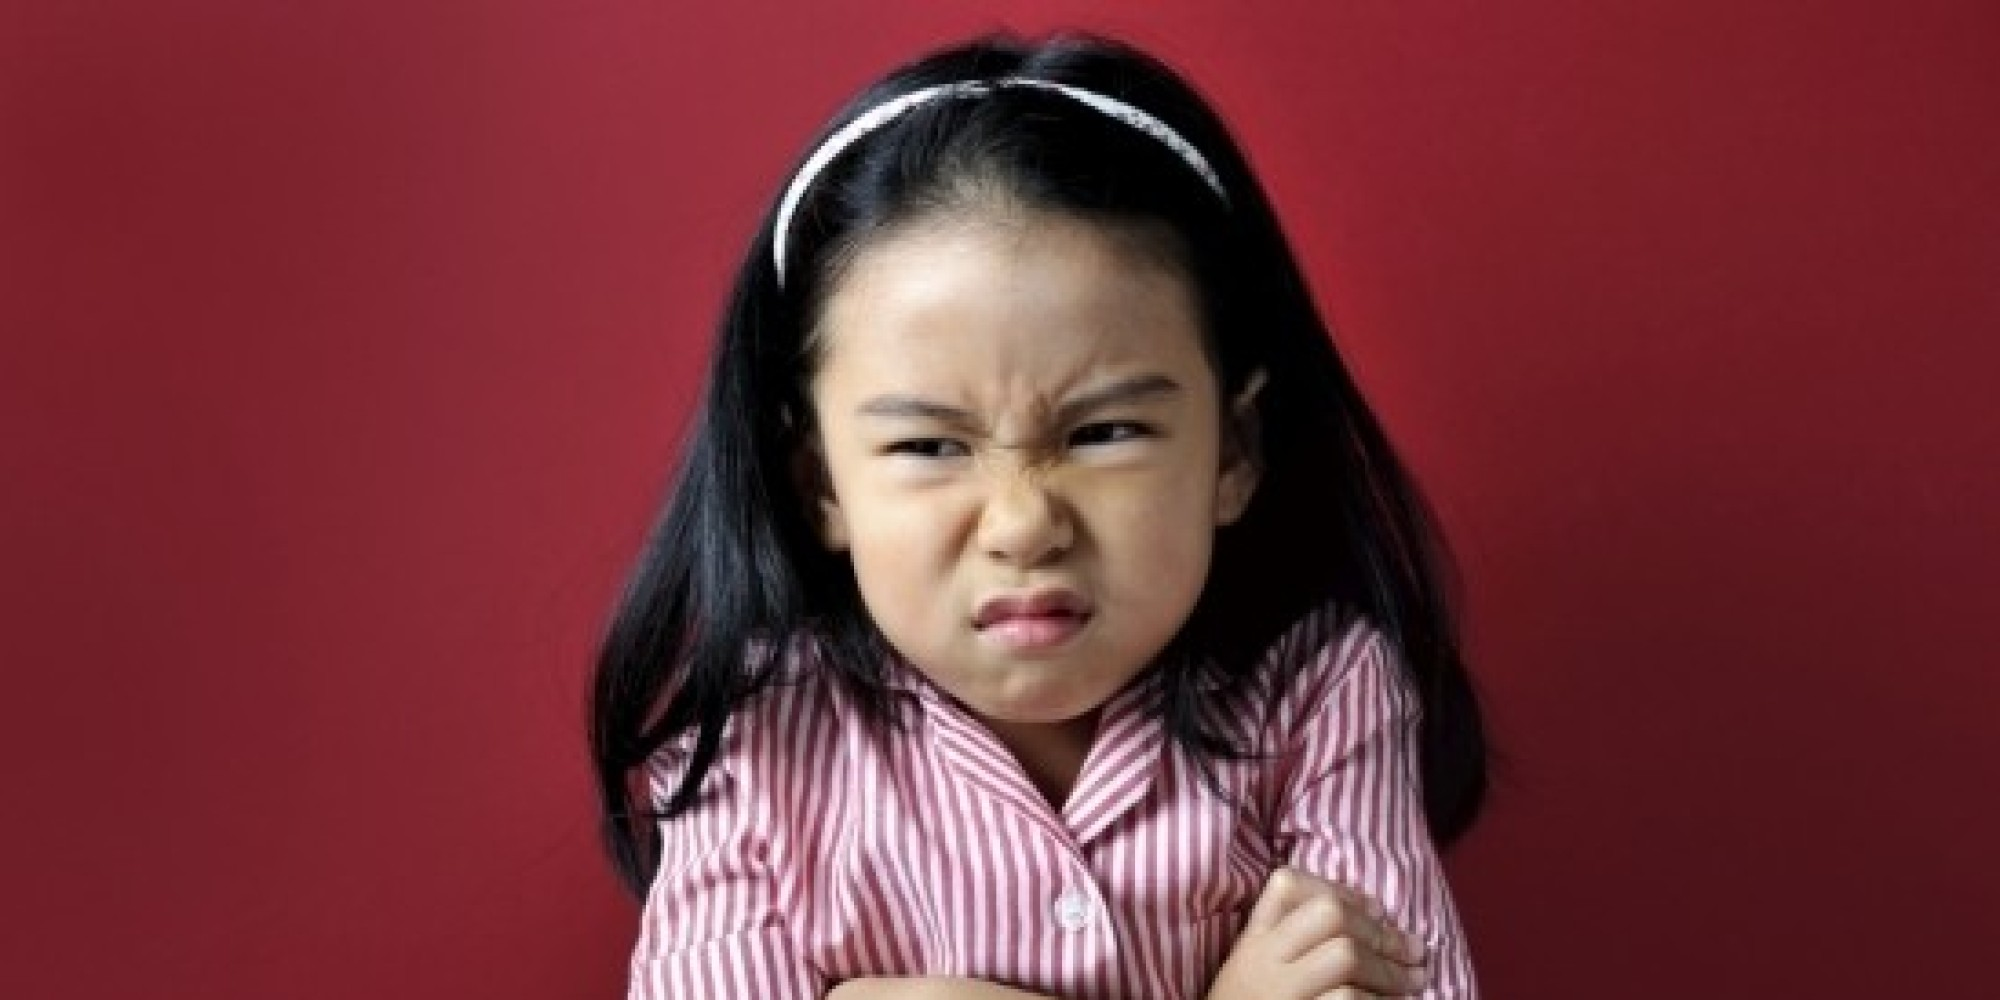 angry faces of children - photo #7